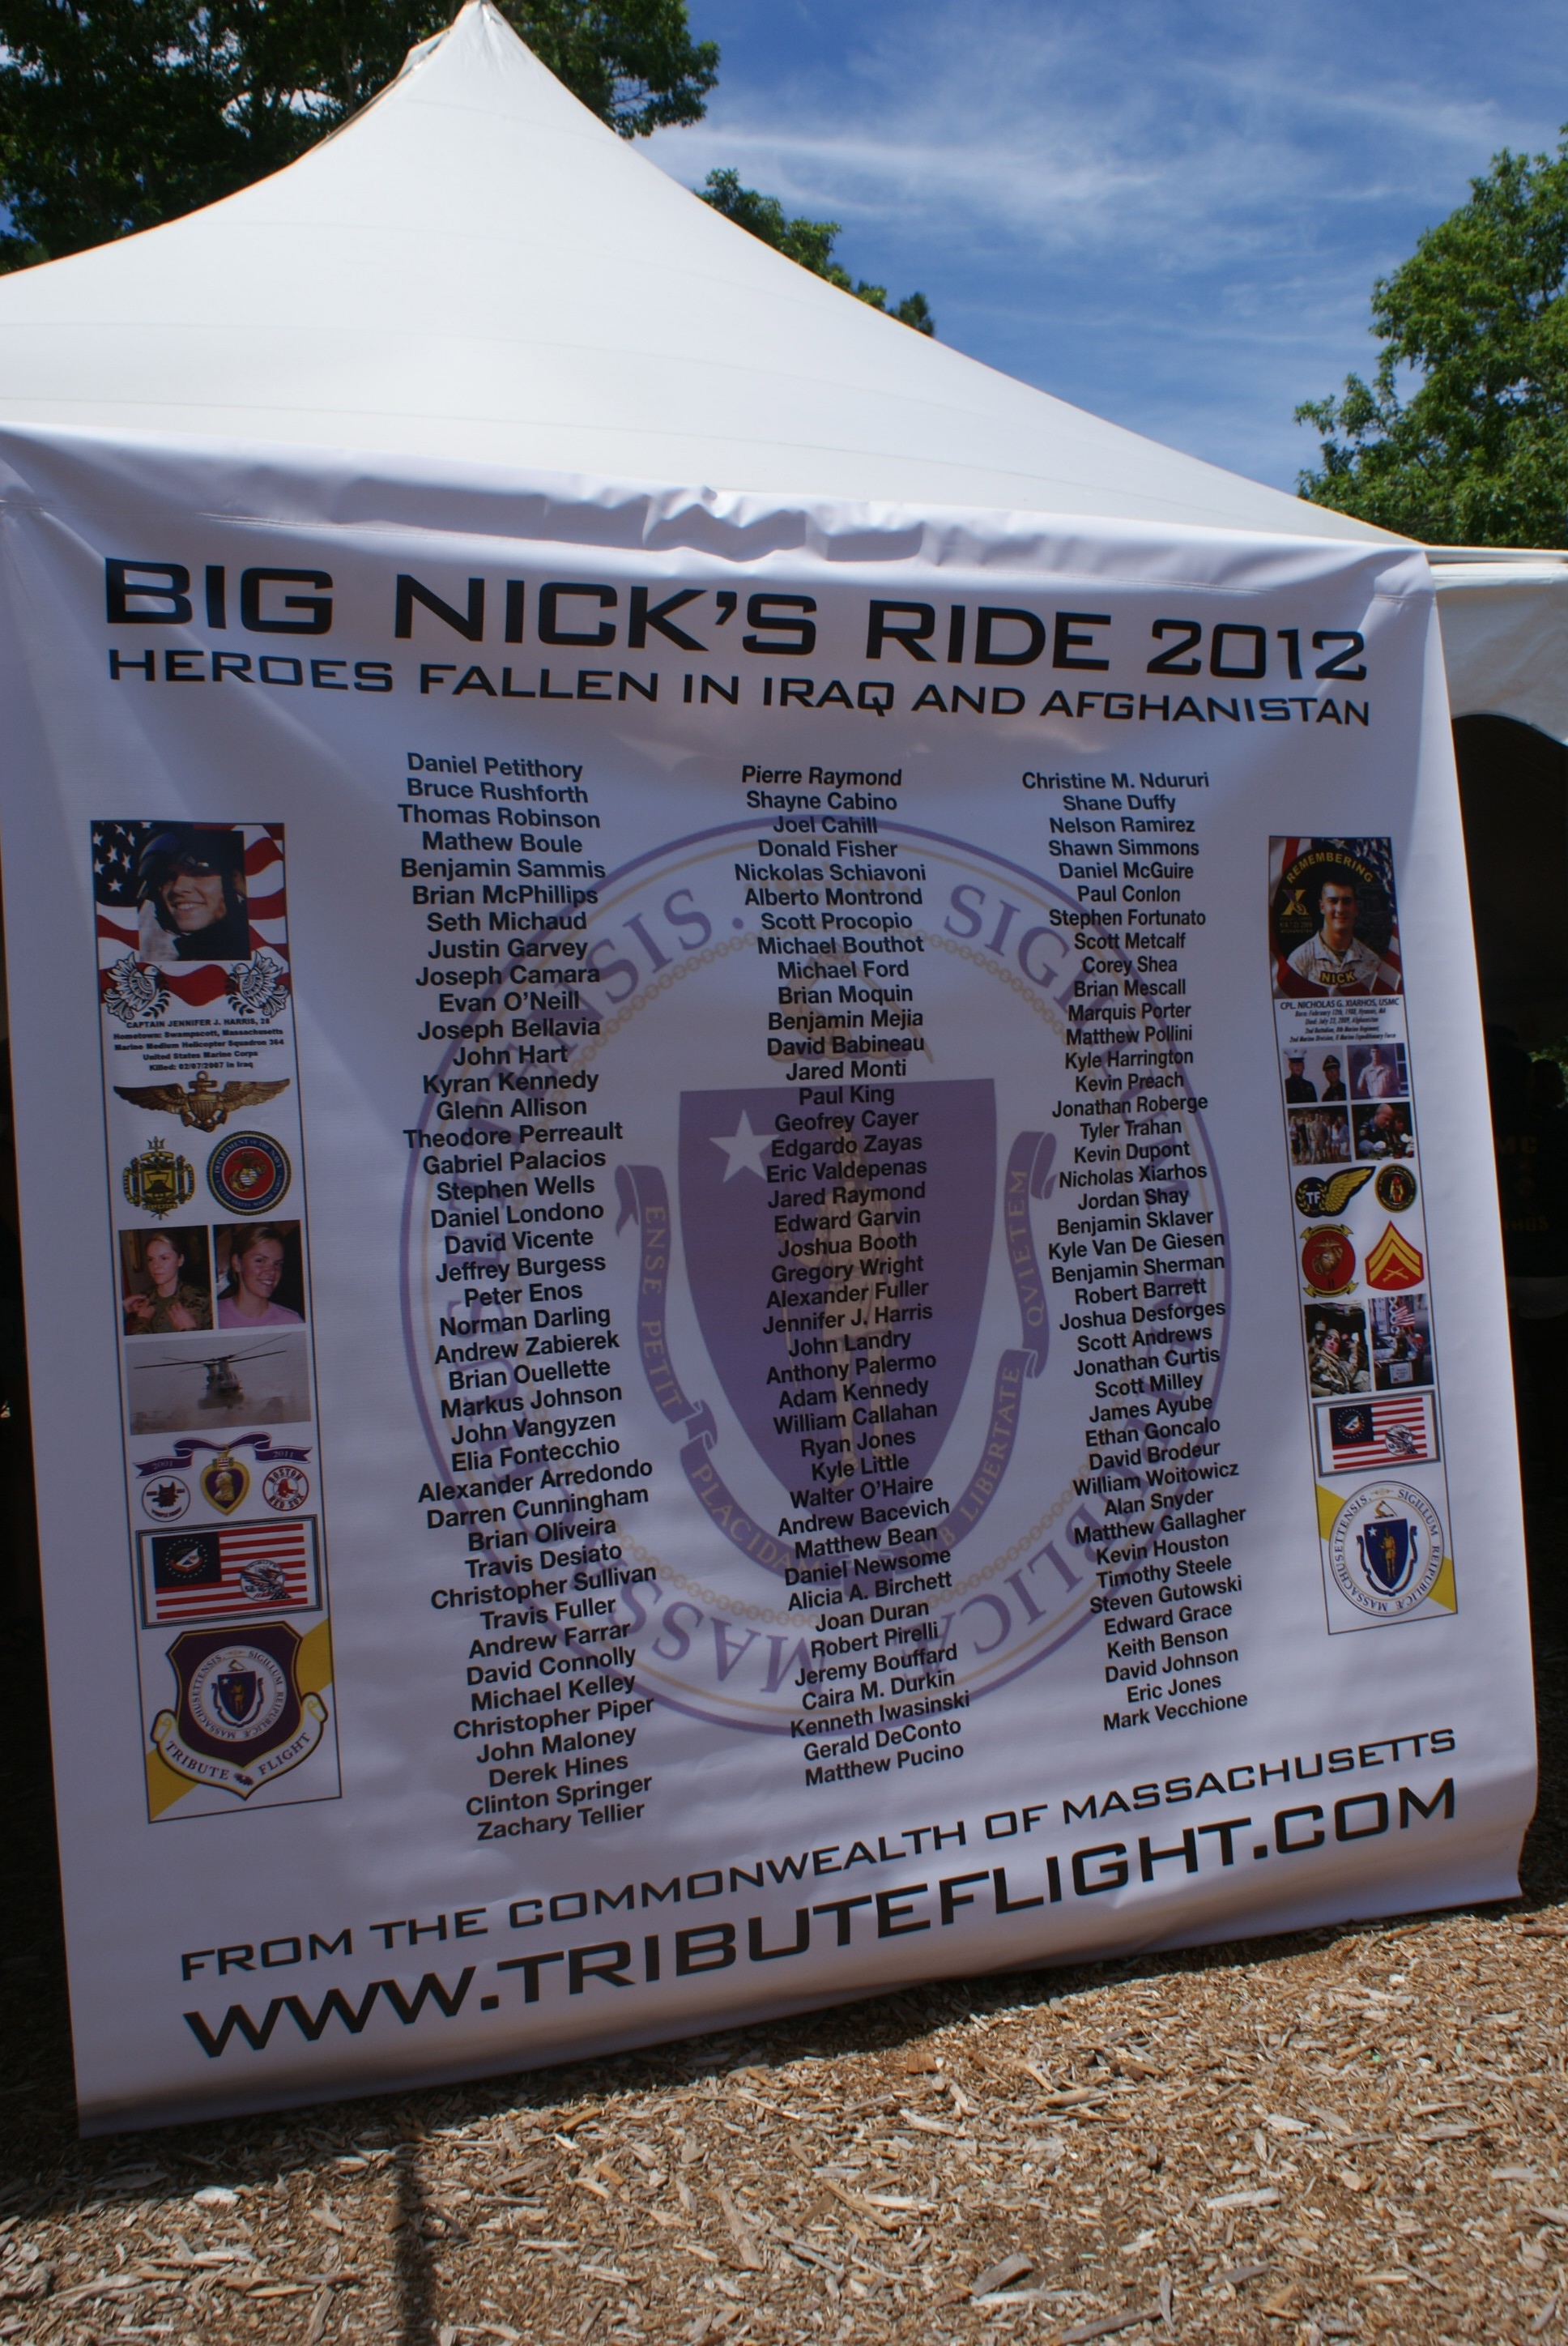 Big Nick's Ride 2012